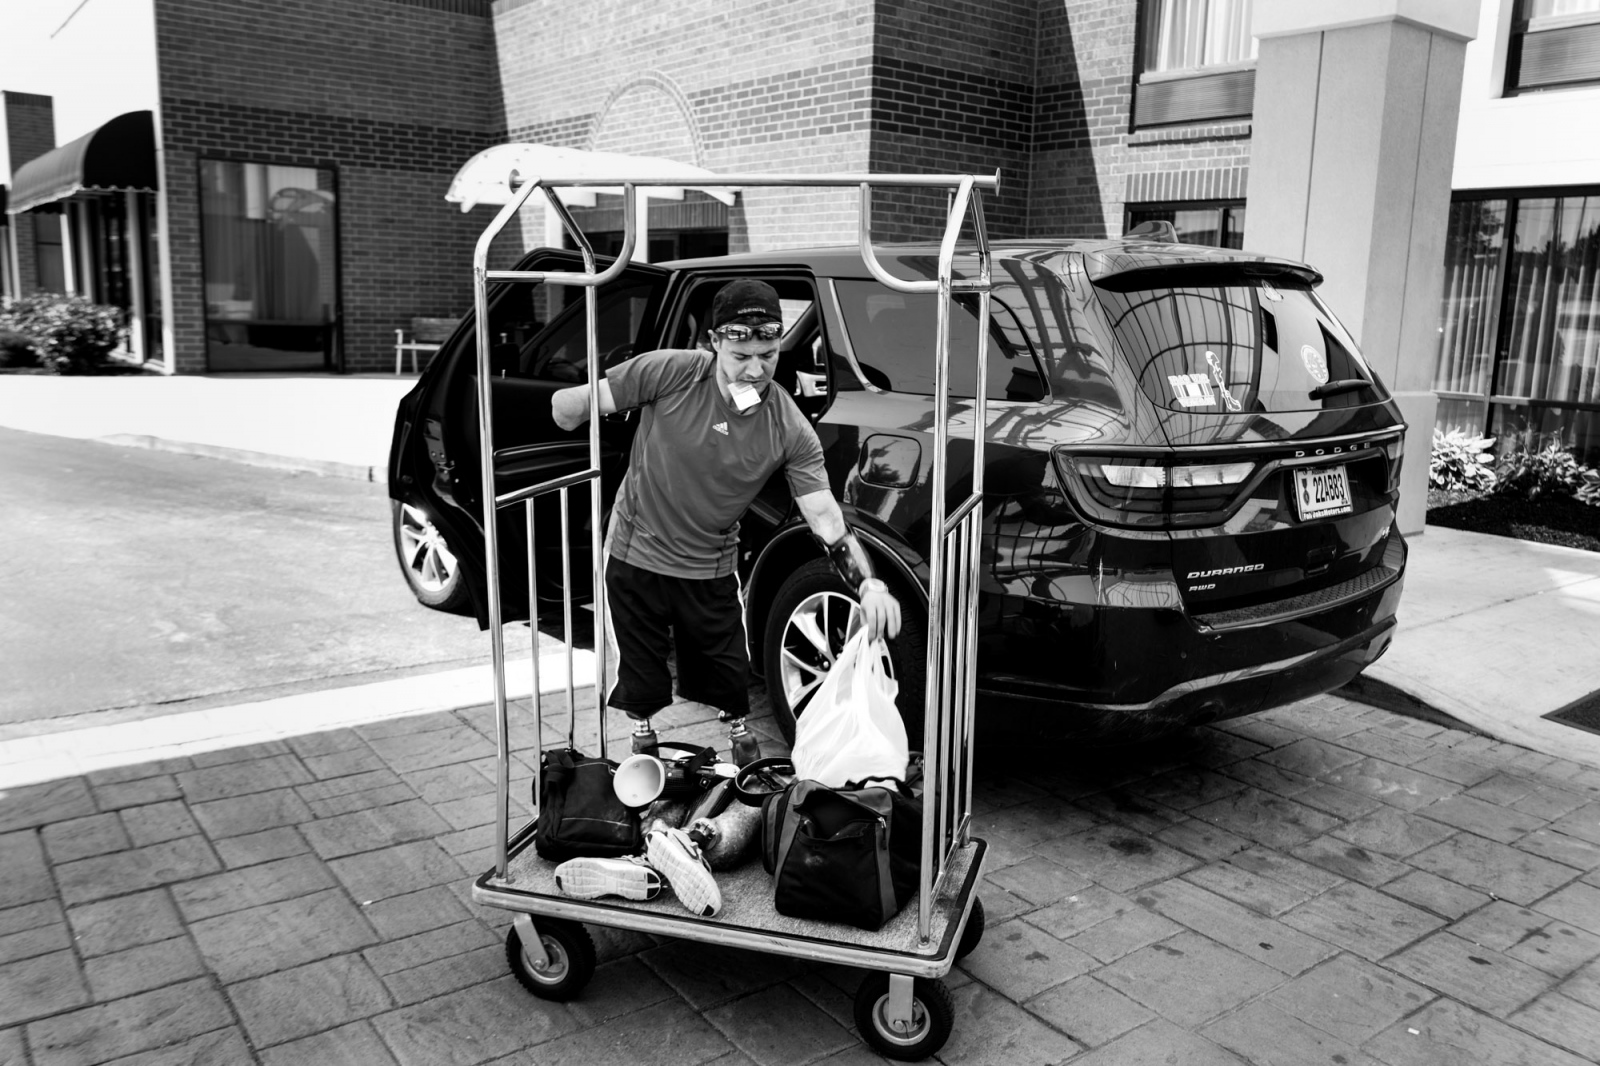 St. Louis, Missouri, USA, 2016. Todd Nicely, retrieving his luggages and his prosthesis from his car.